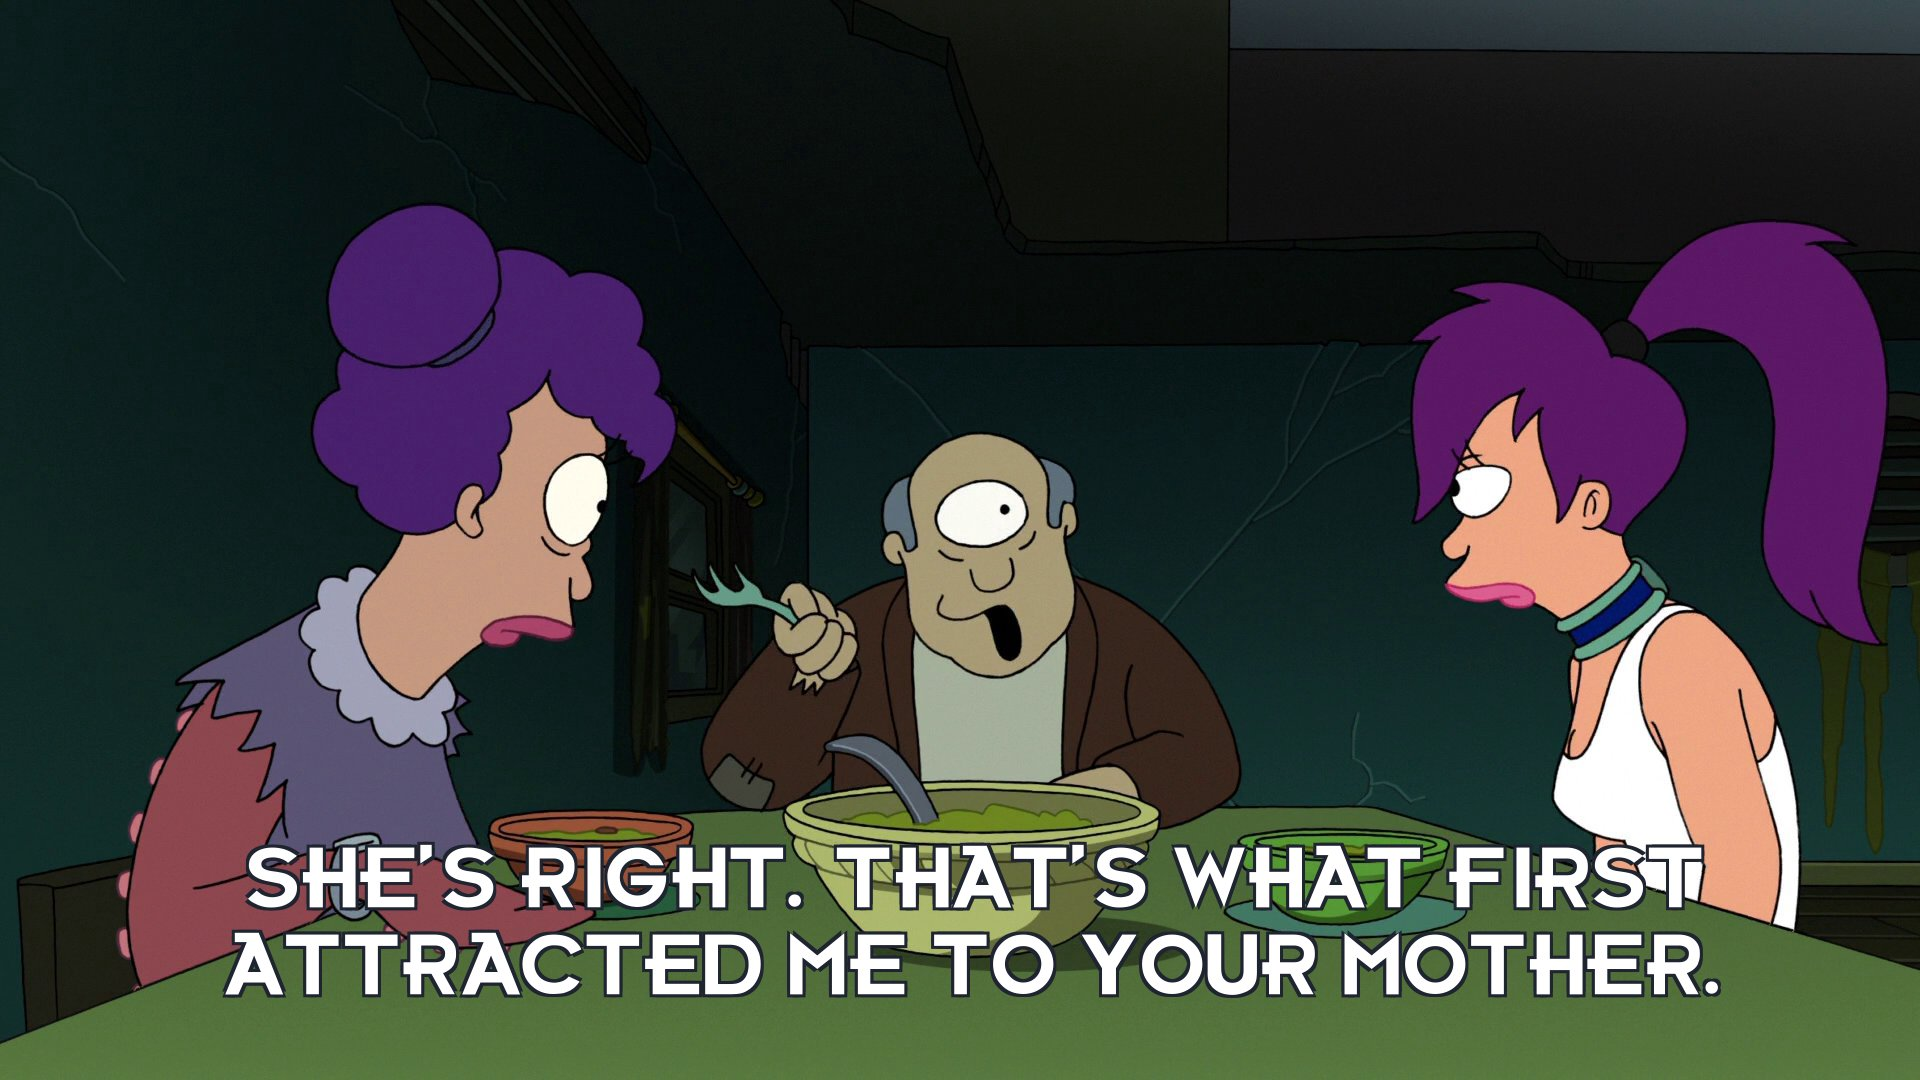 Turanga Morris: She's right. That's what first attracted me to your mother.